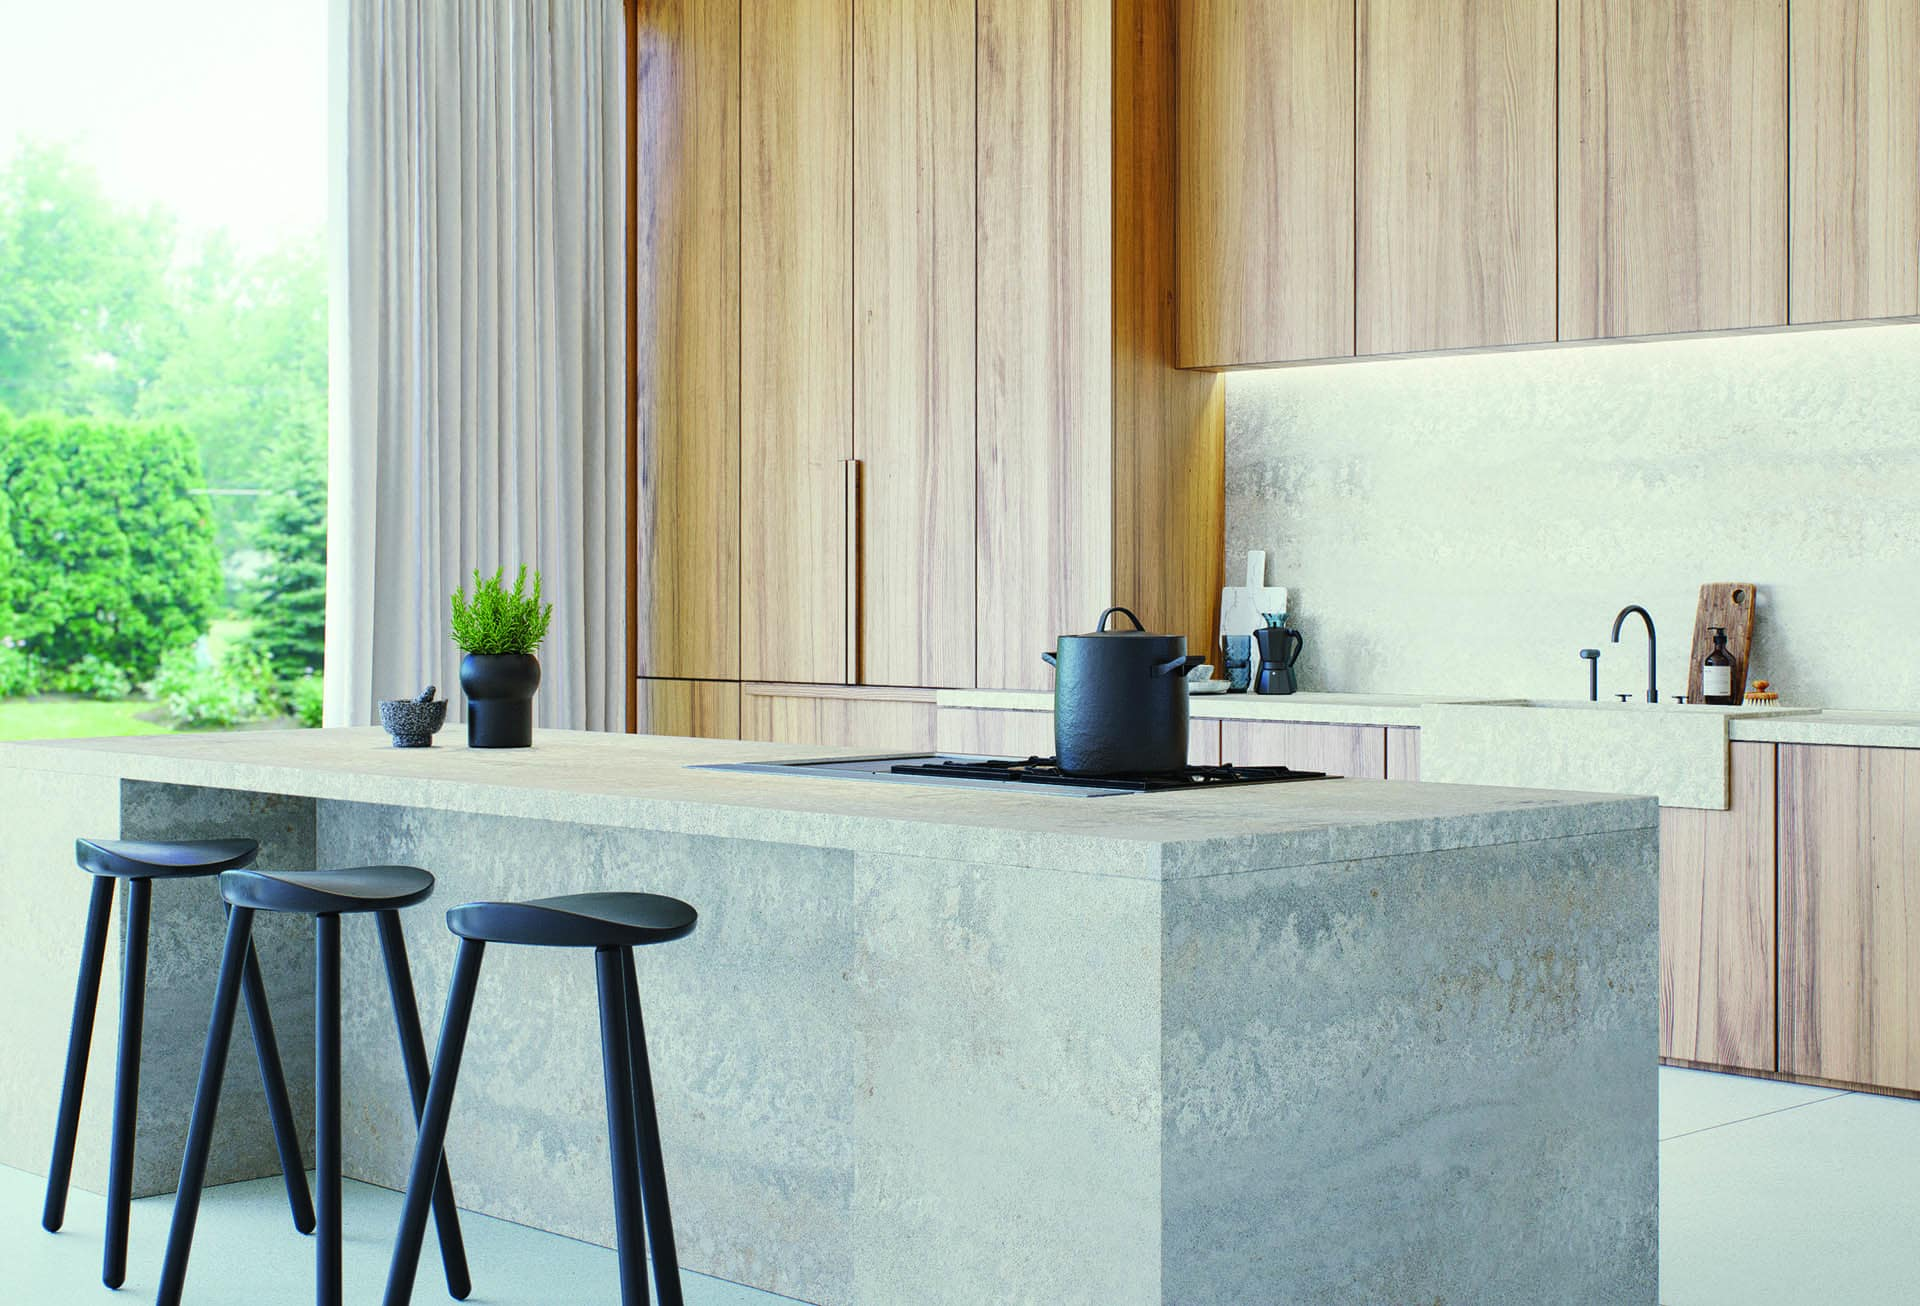 caesarstone concrete benchtop primordia in oask kitchen cabinets